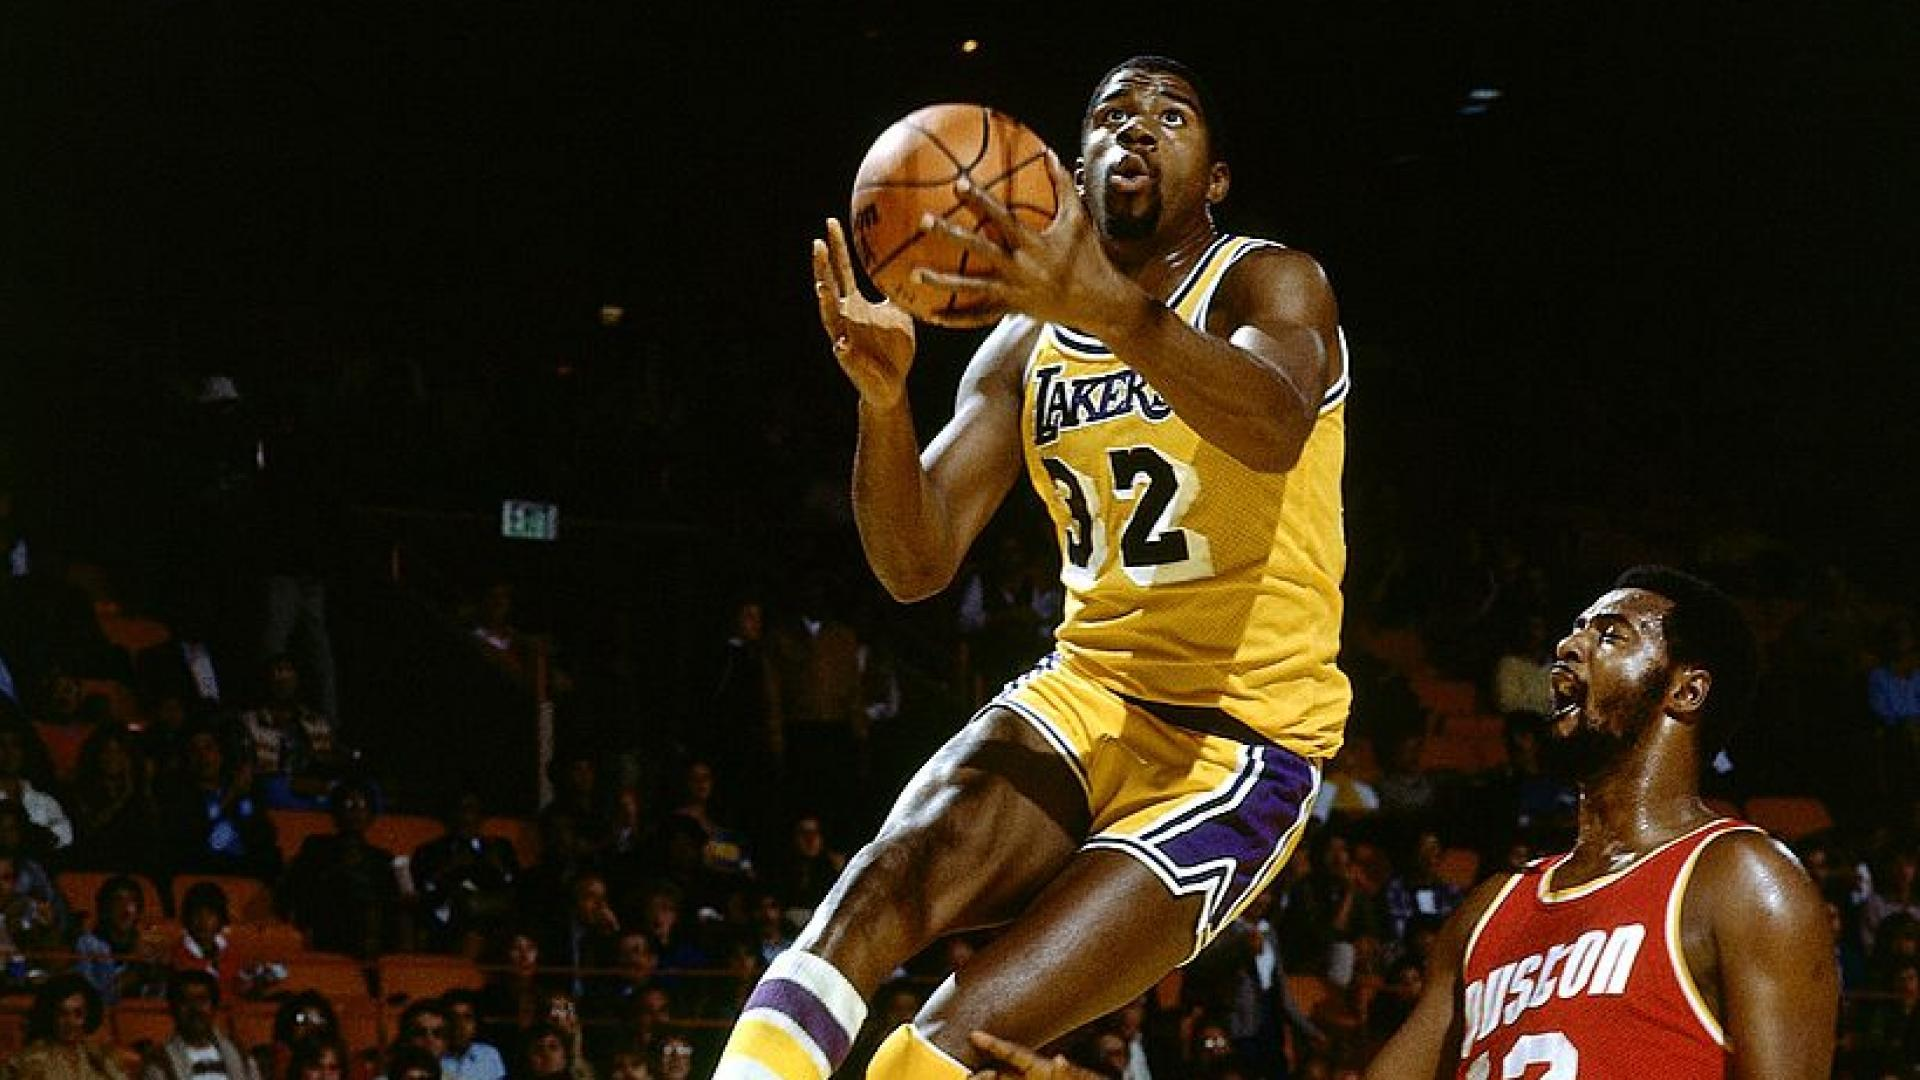 db82a551d203 Magic Johnson s size and playmaking ability made him stand out in NBA lore.